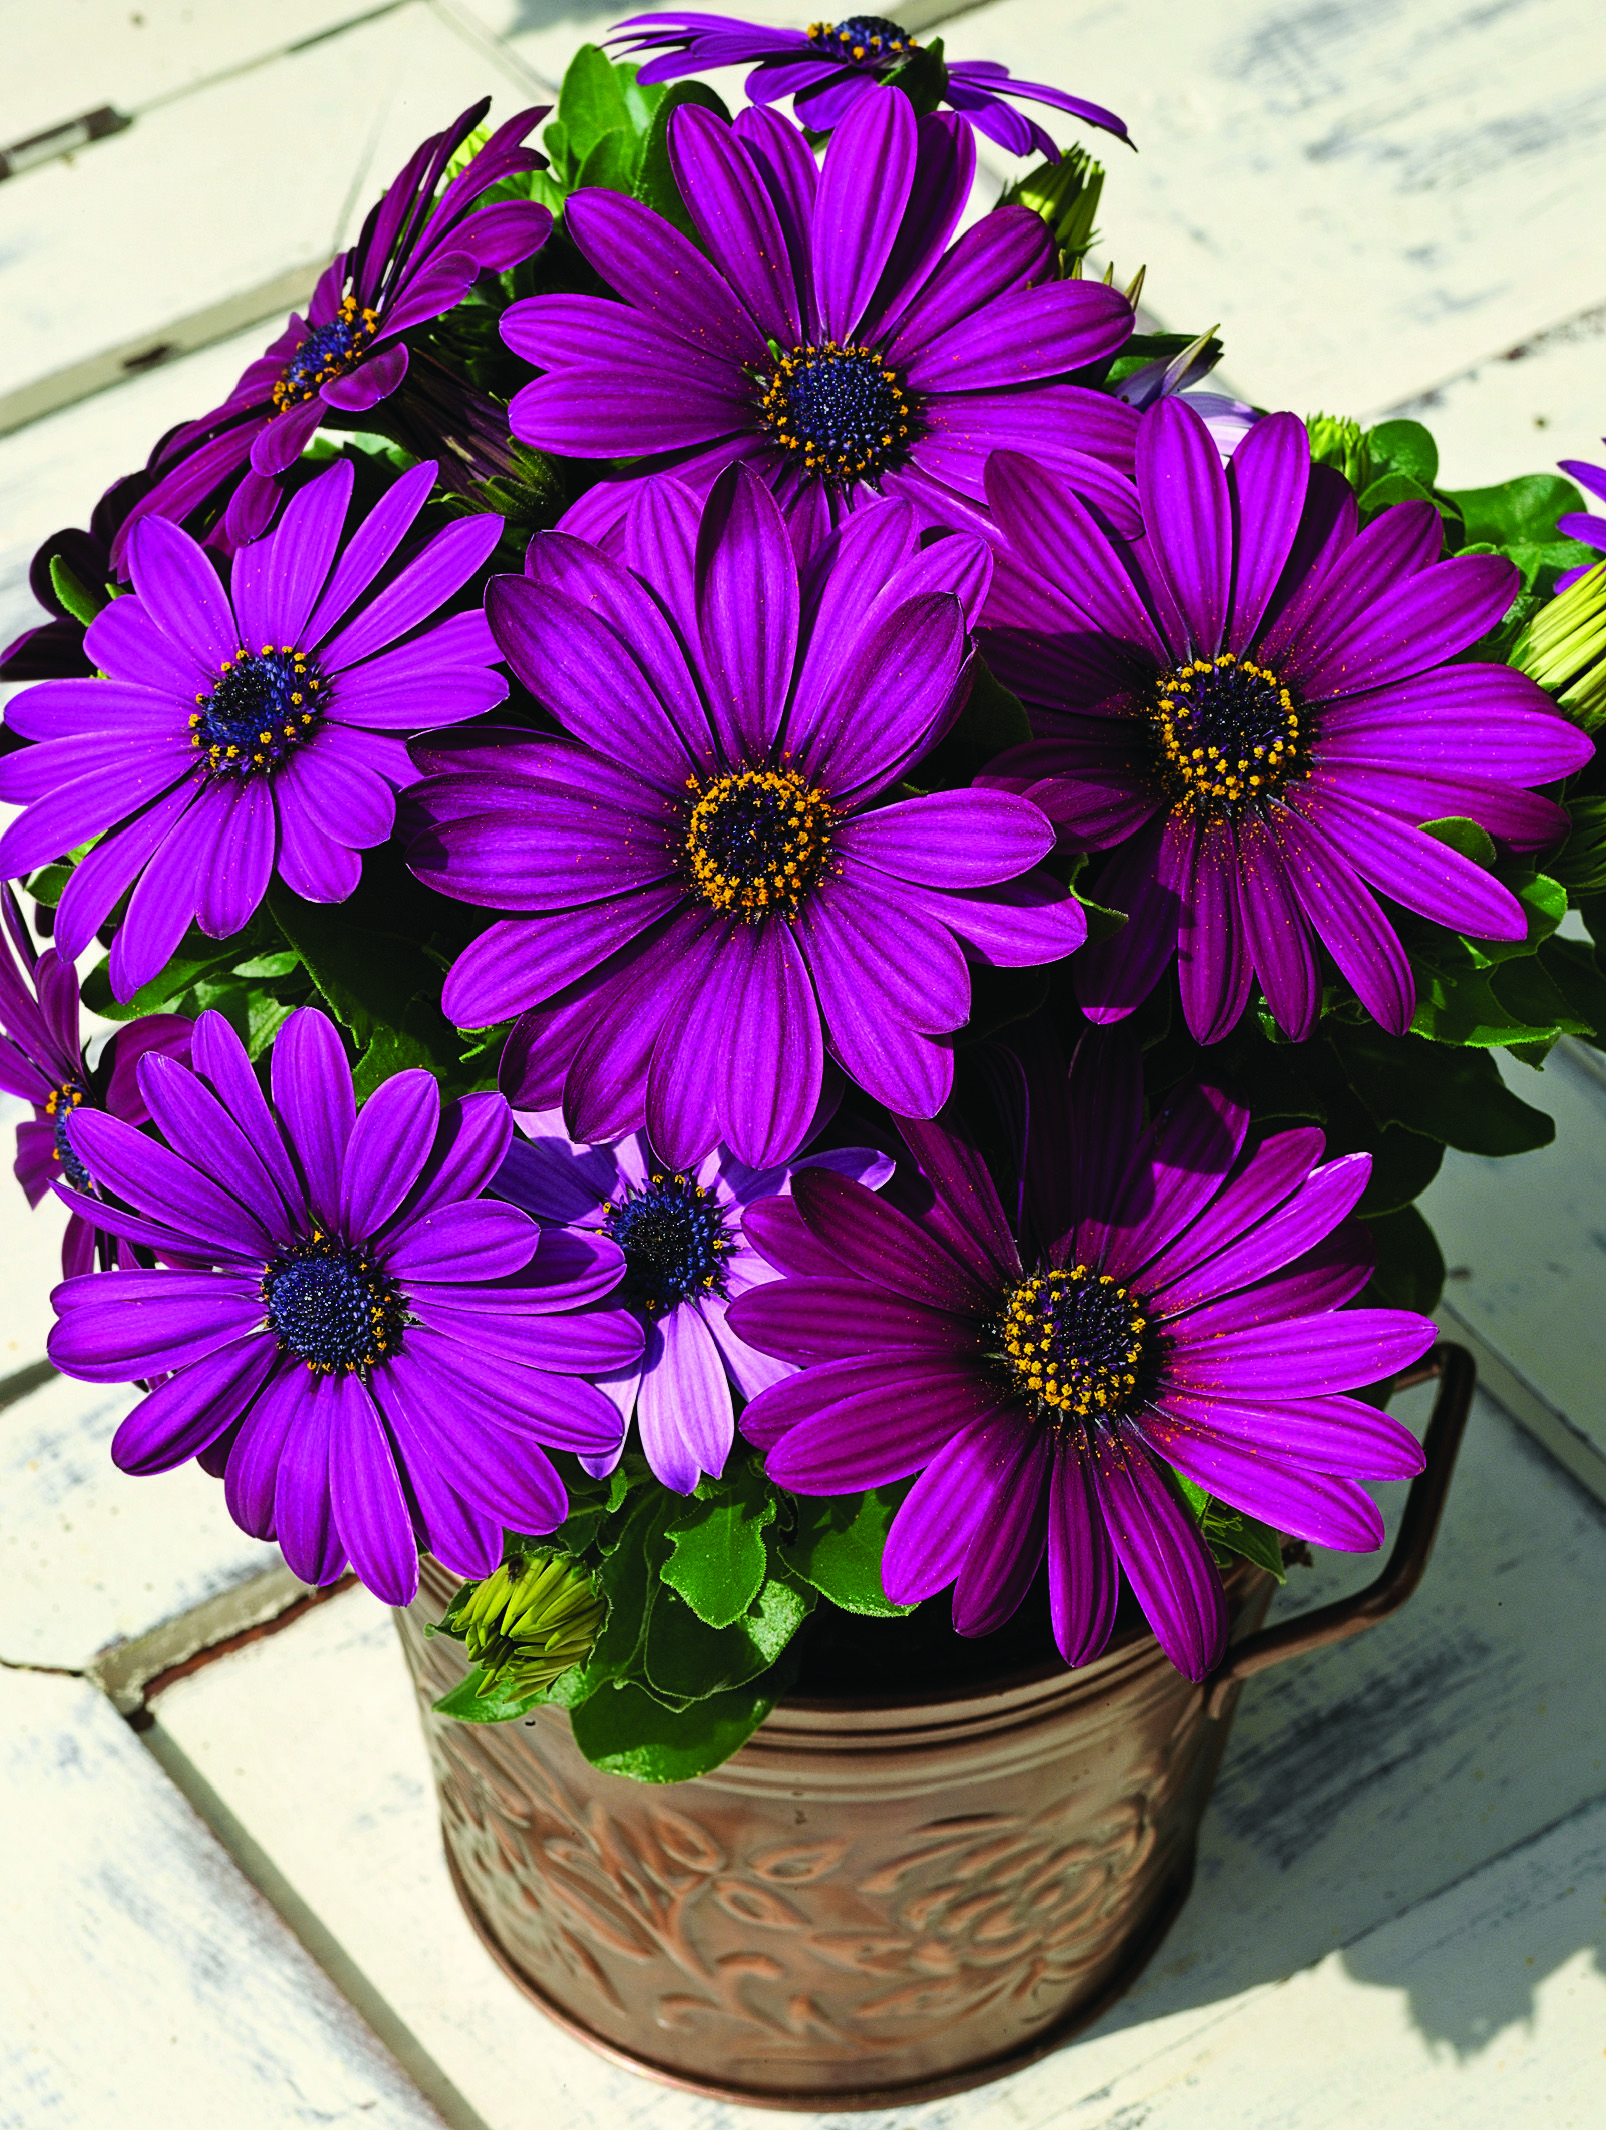 Osteospermum asti purple an upright compact plant with simple they produce lots of really bright flowers that attract lots of bees for pollination of all my vegetables on my deck container izmirmasajfo Choice Image